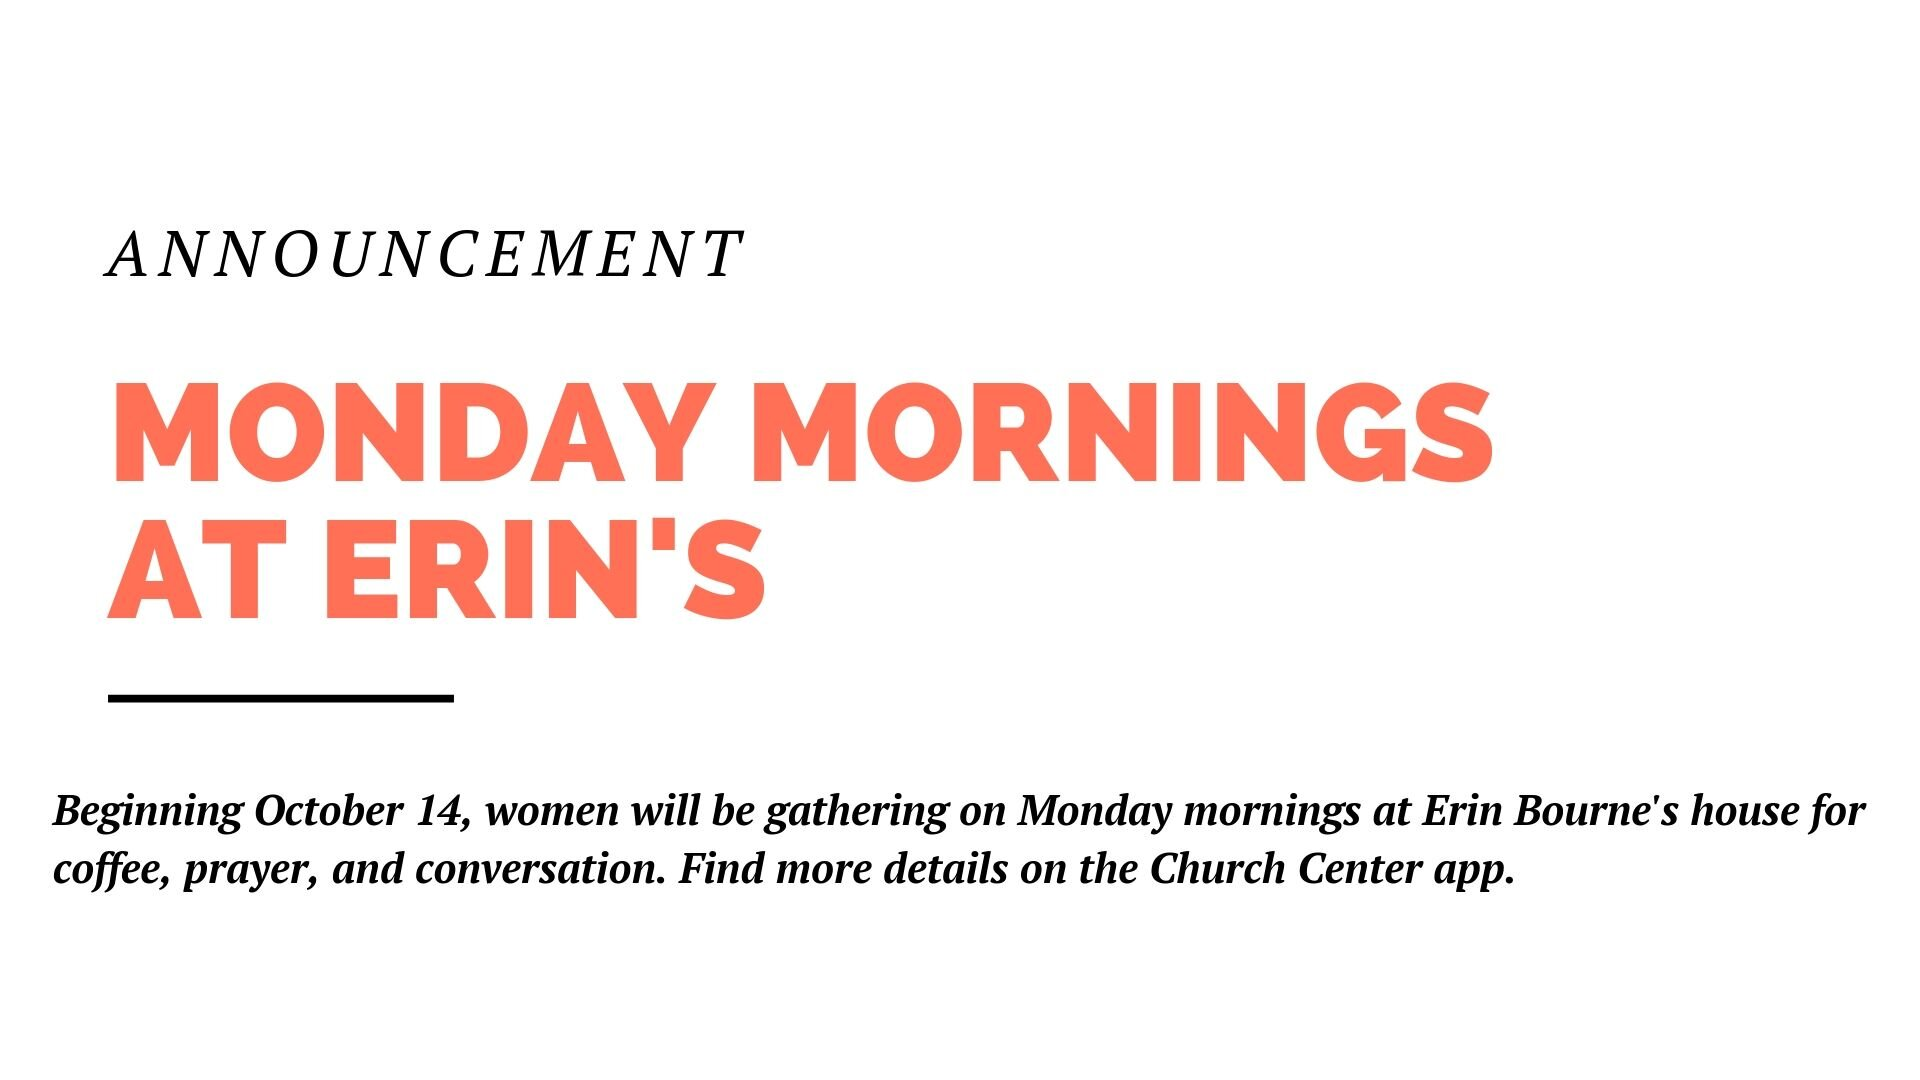 Beginning October 14, women will be gathering on Monday mornings at Erin Bourne's house for coffee, prayer, and conversation. Find more details on the Church Center app.